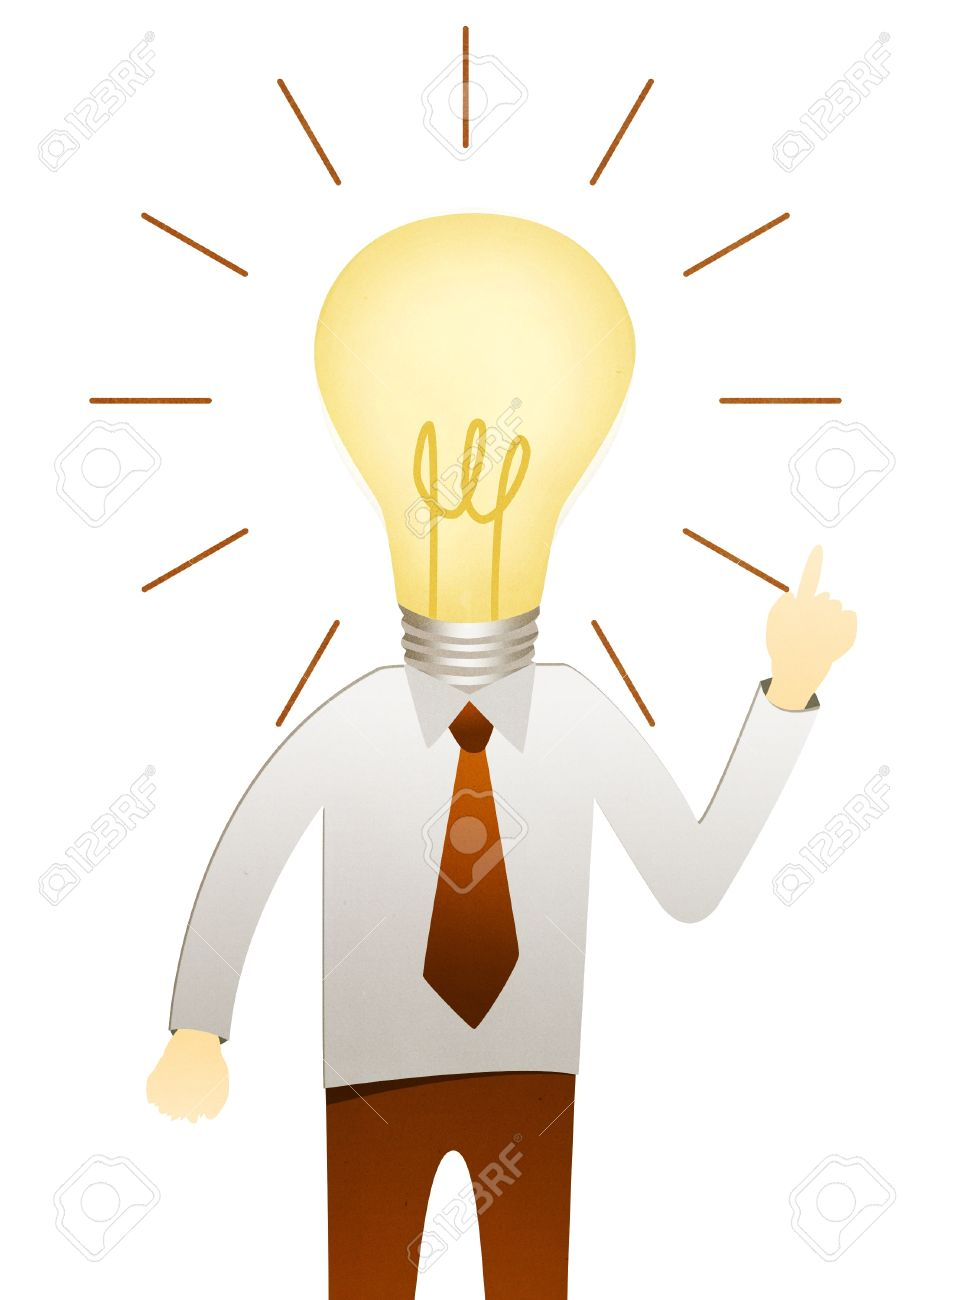 Business Man With Head Idea Lightbulb Stock Photo, Picture And ... for Idea Light Bulb Over Head  111bof